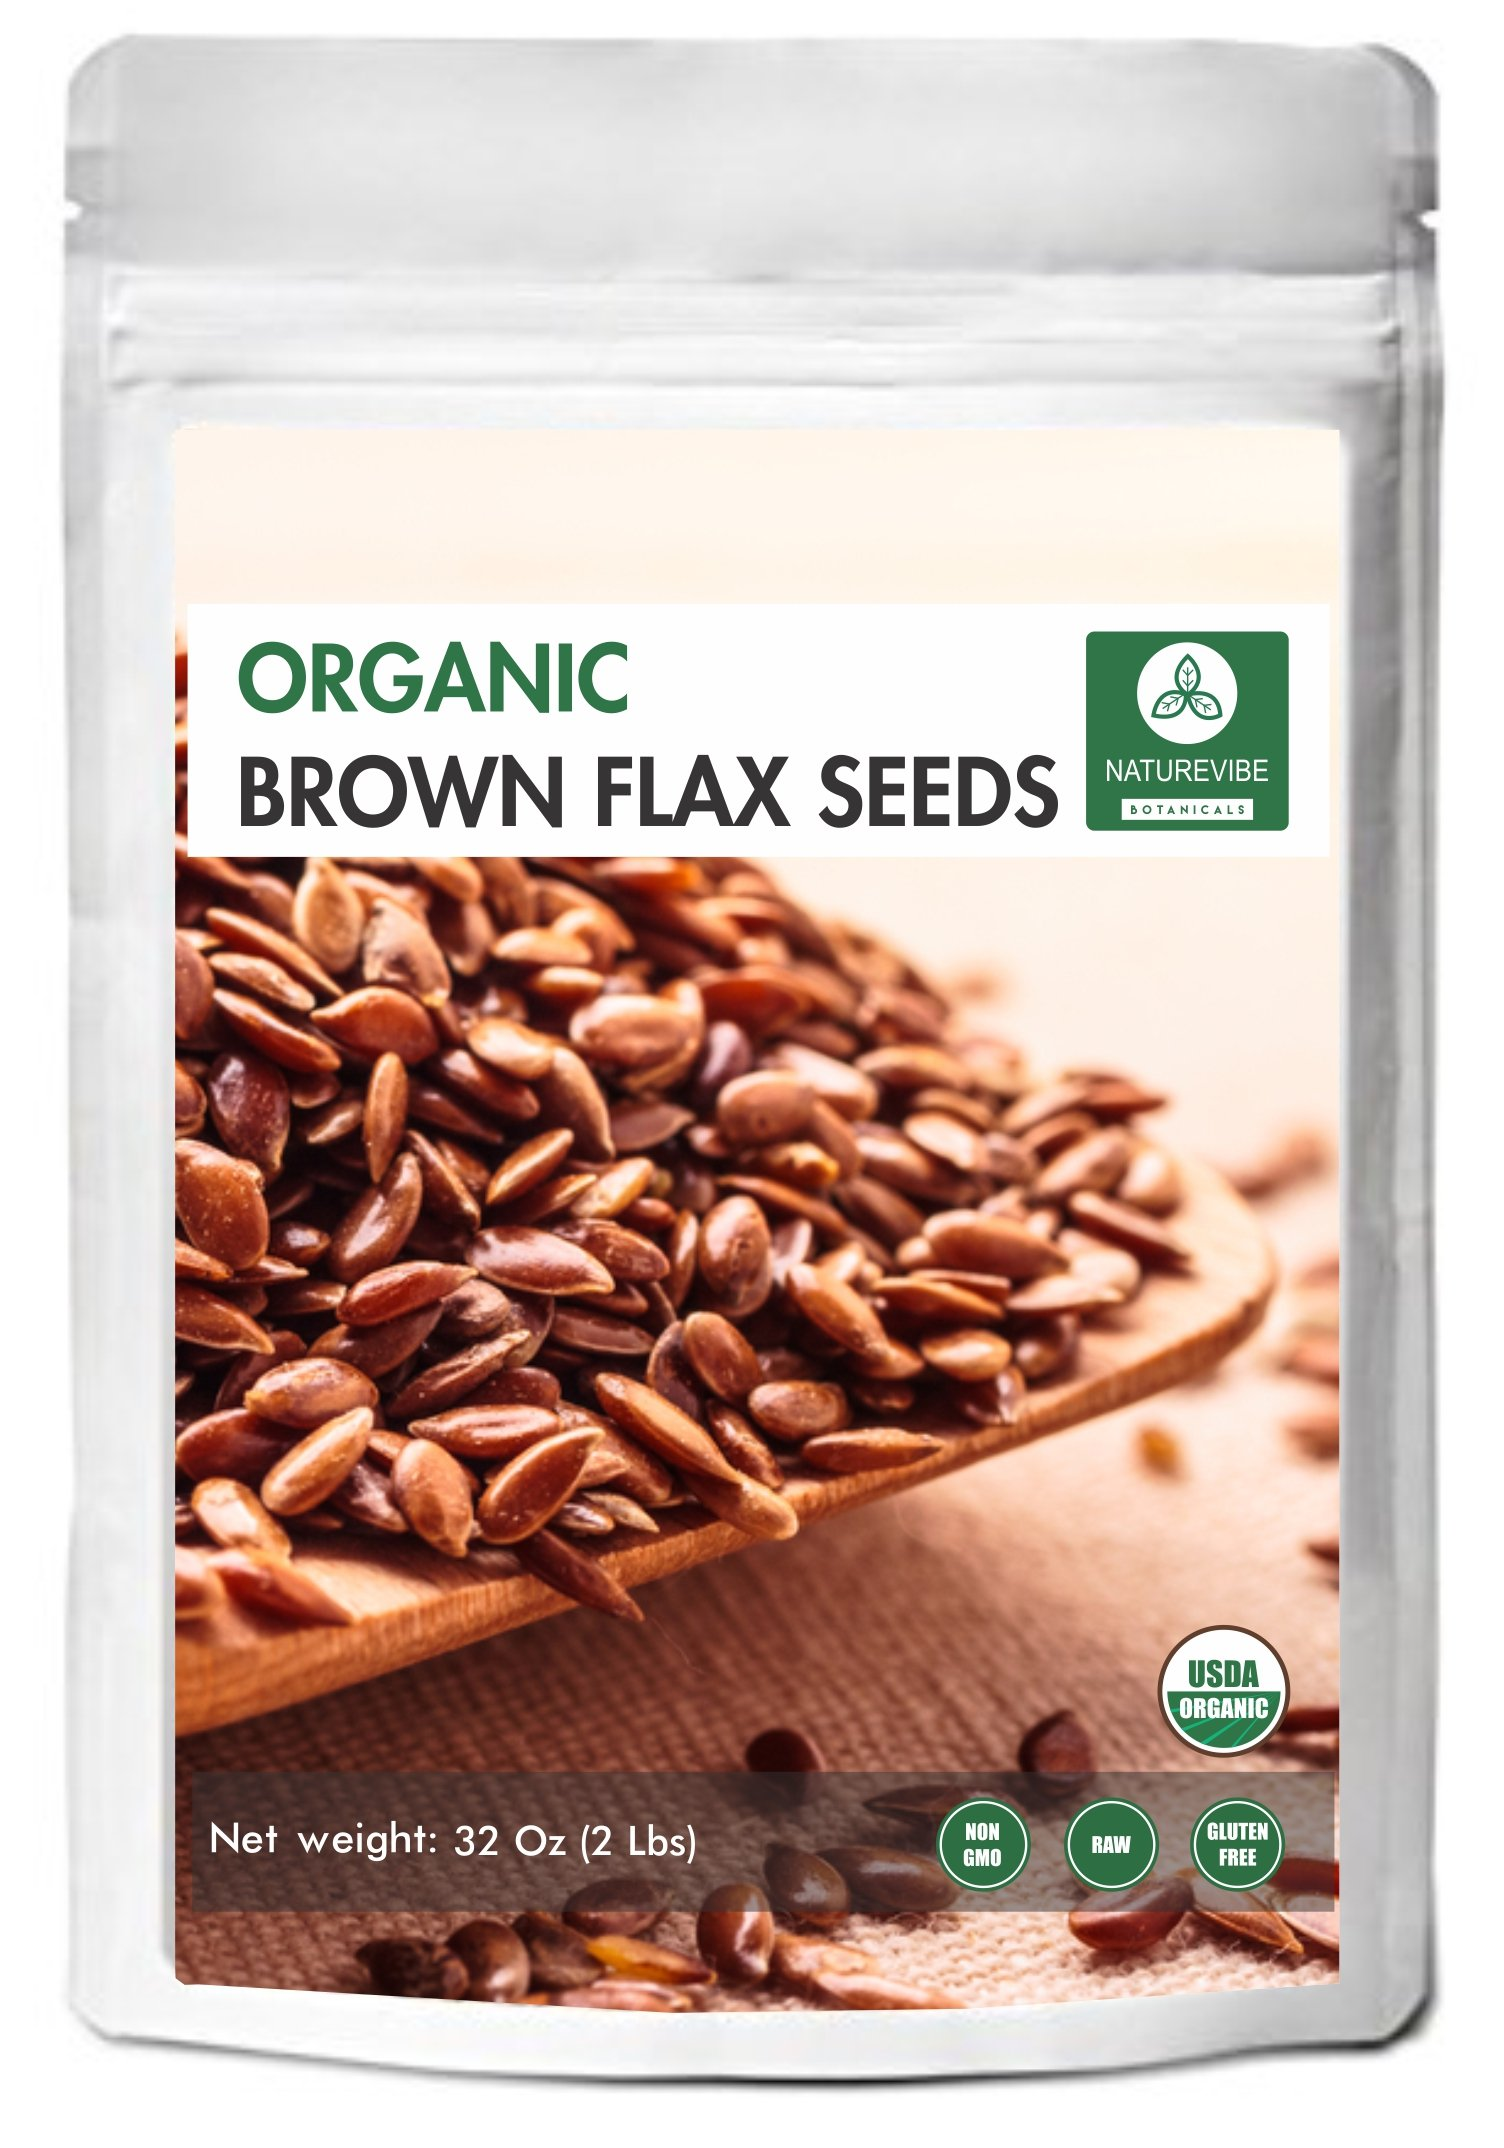 Organic Brown Flax Seed (2lb) by Naturevibe Botanicals, Gluten-Free & Non-GMO (32 ounces) by Naturevibe Botanicals (Image #1)